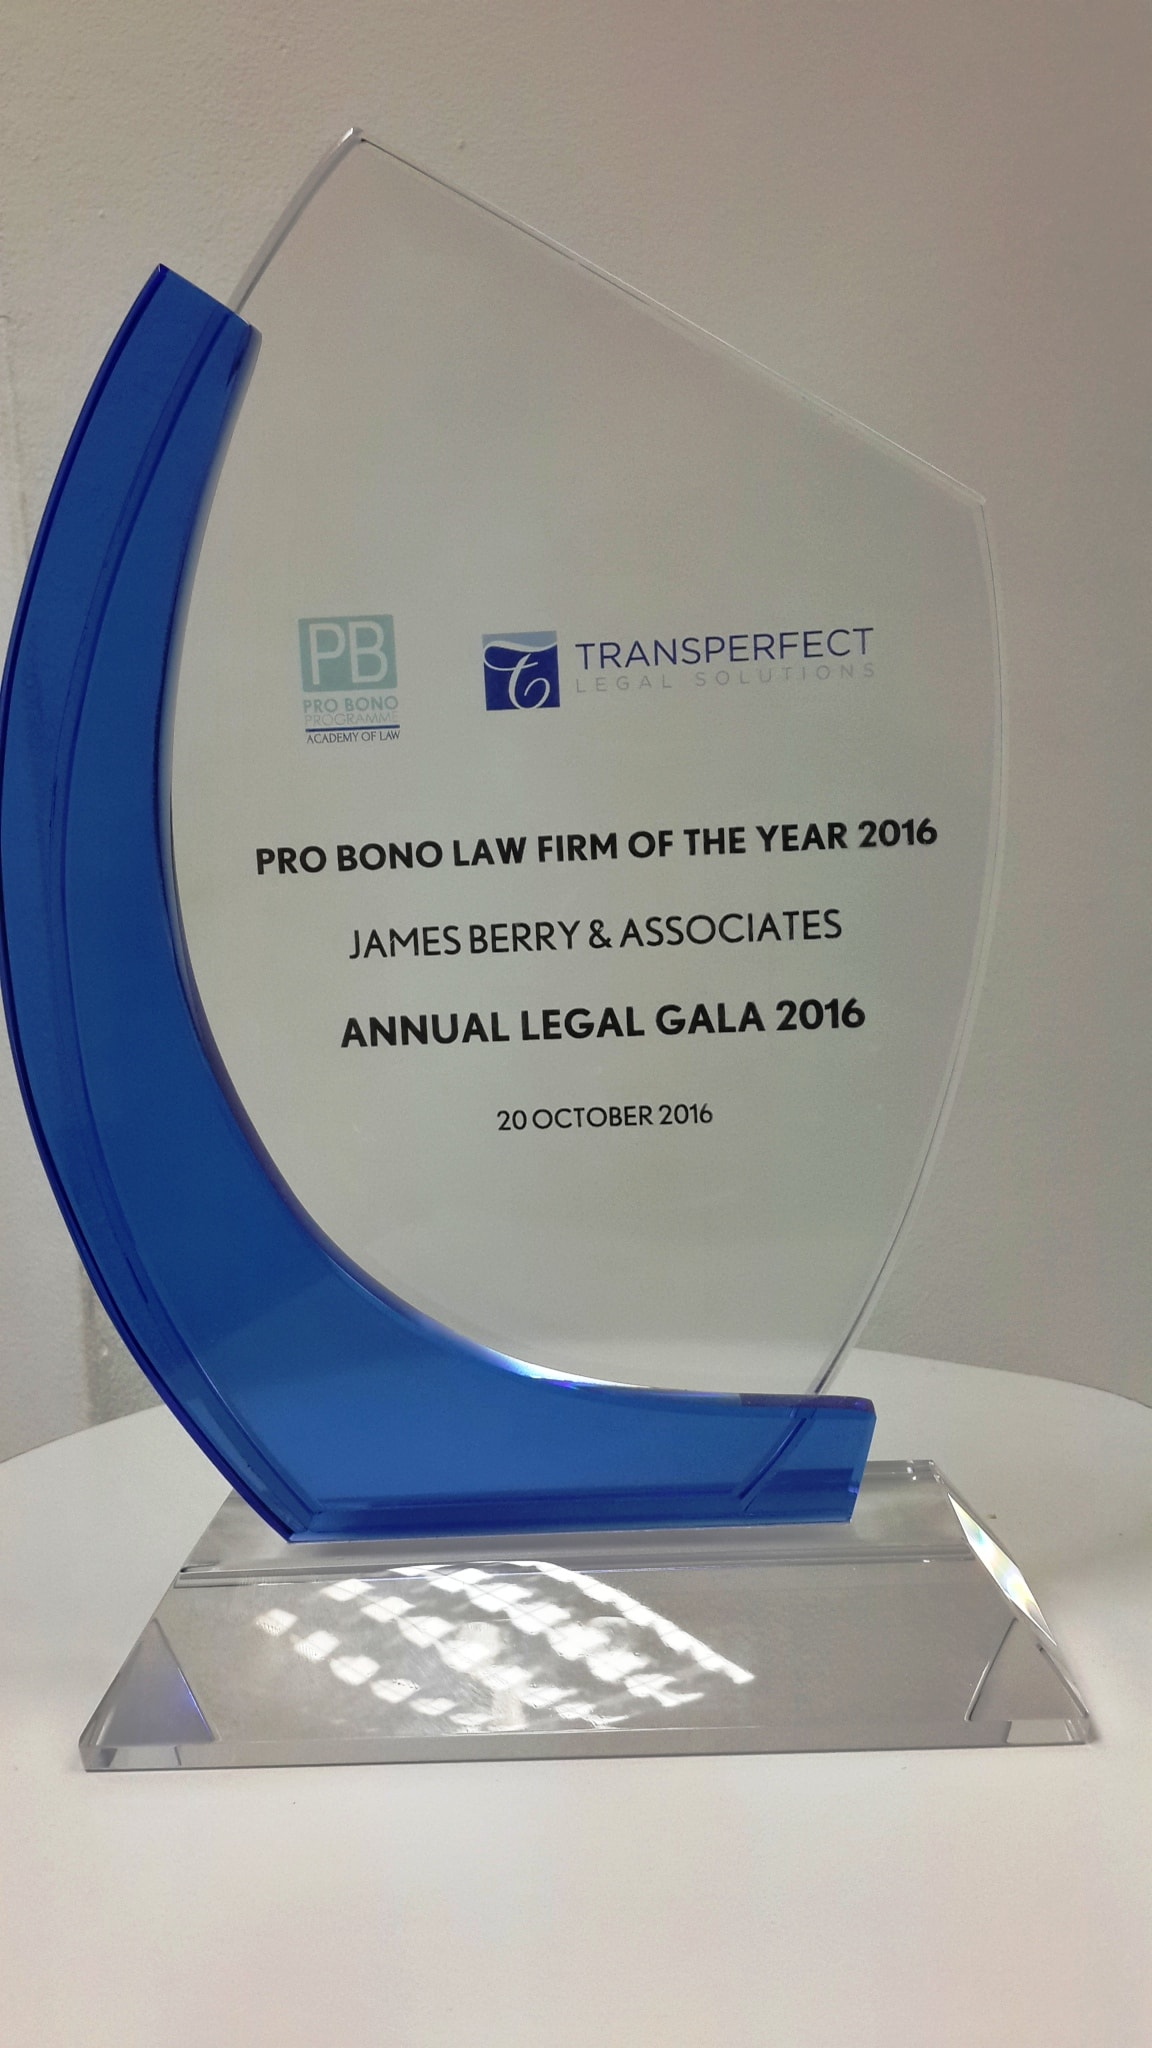 DIFC COURTS' PRO BONO LAW FIRM OF THE YEAR 2016